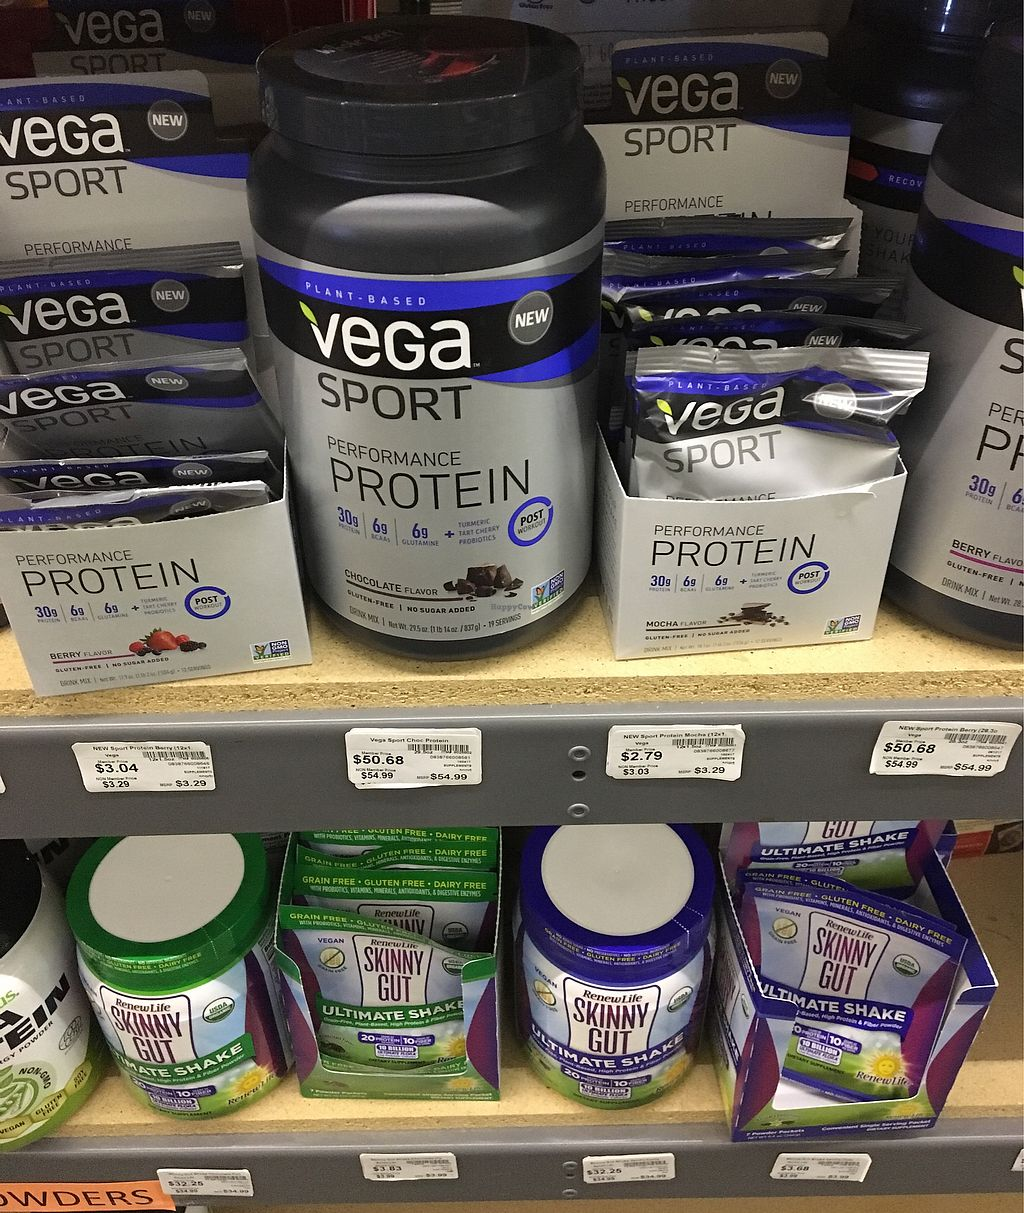 """Photo of Blue Water Natural Foods  by <a href=""""/members/profile/MaryAnneRohrdanz"""">MaryAnneRohrdanz</a> <br/>Some protein powders. There are some other supplements not shown <br/> November 22, 2017  - <a href='/contact/abuse/image/16506/327978'>Report</a>"""